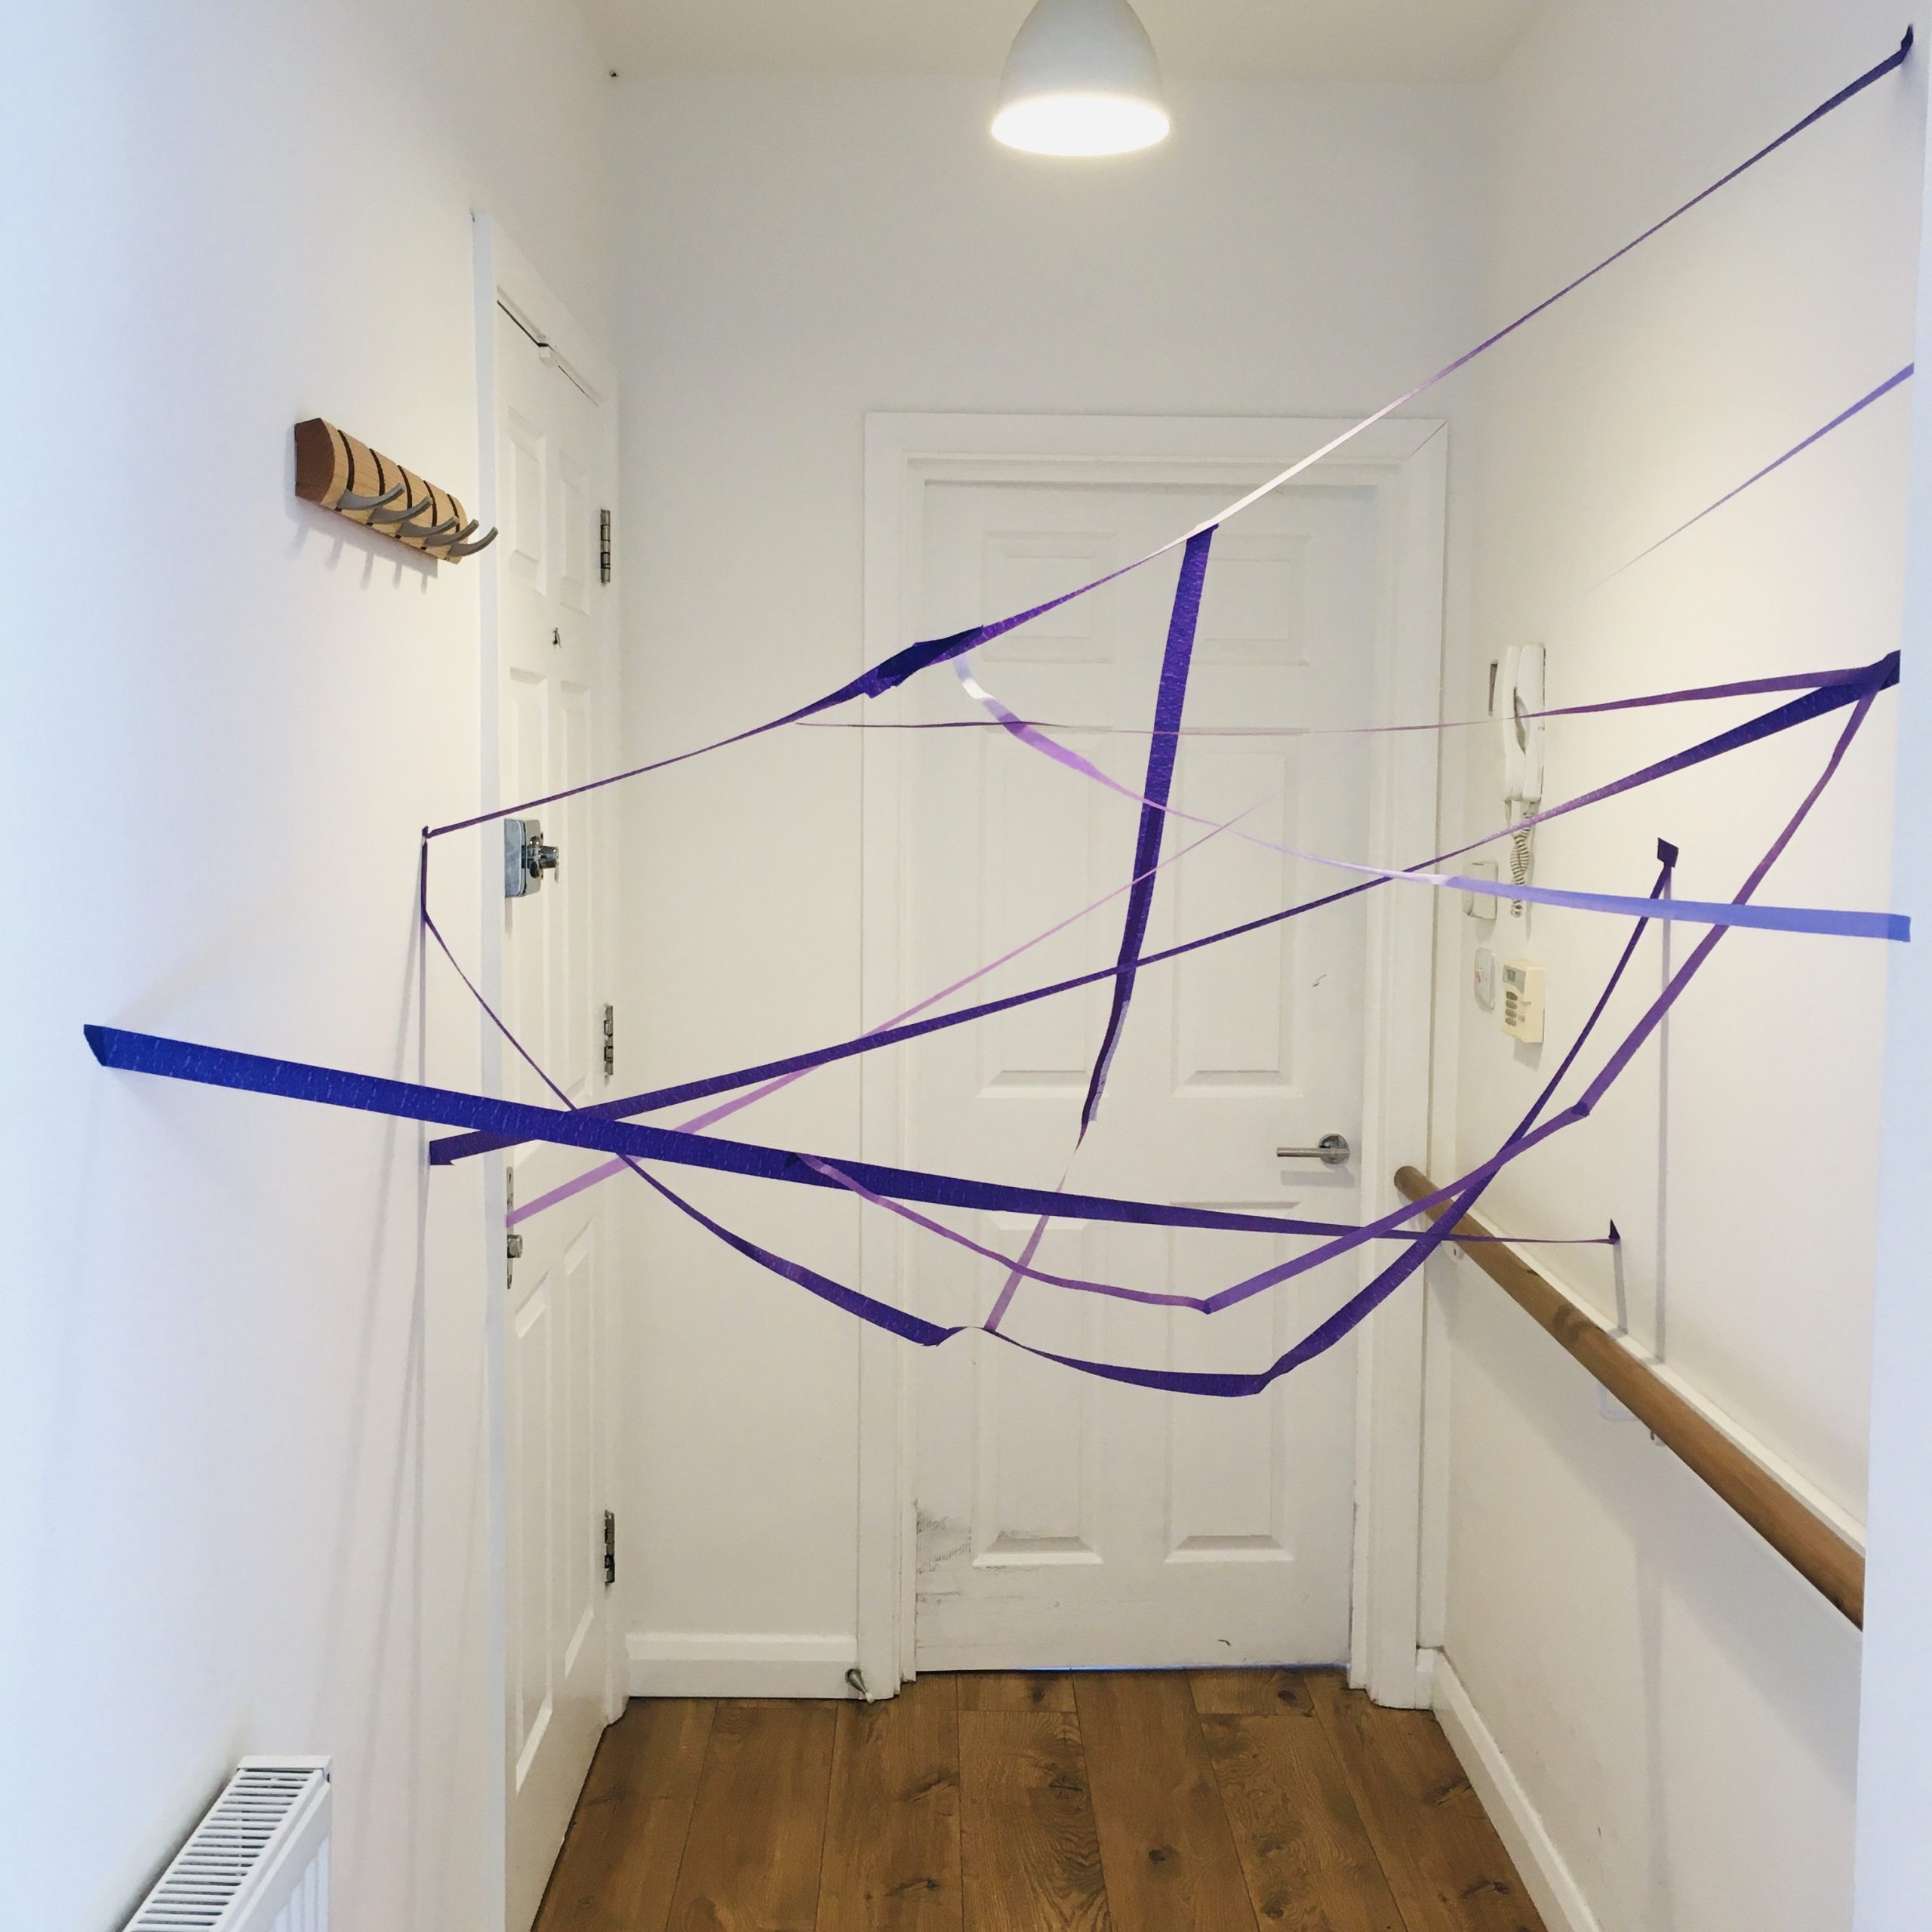 A photograph of a tangle maze in a white hallway with wooden floors. Brightly coloured Purple masking tape criss crosses throughout the corridor acting as a tangle maze of obstacles!